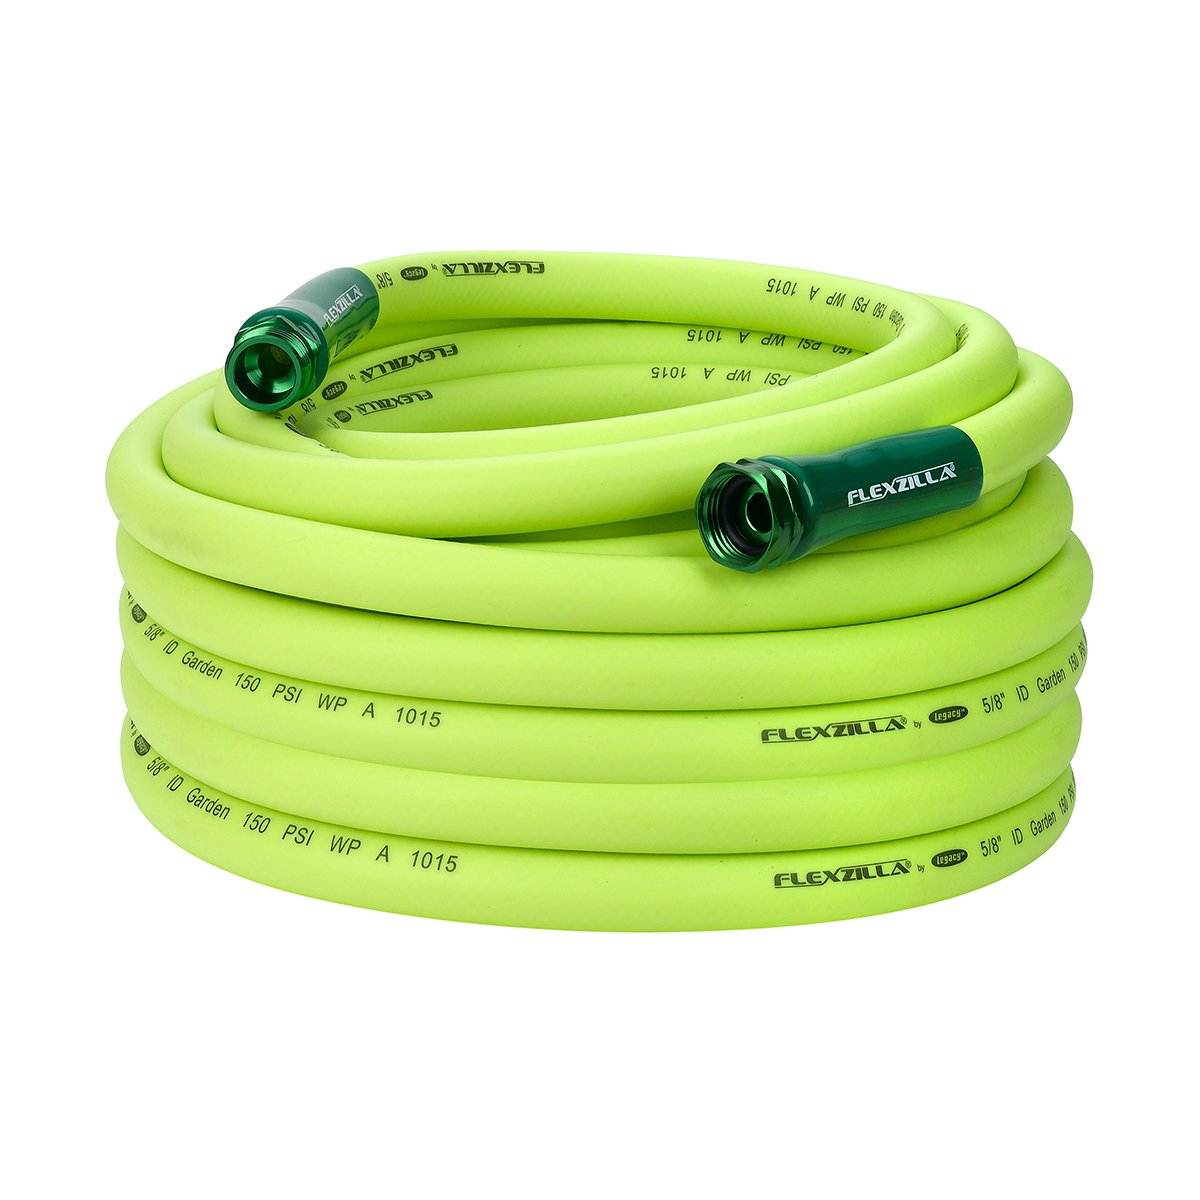 Flexzilla Garden Hose, 5/8 in. x 75 ft, Heavy Duty, Lightweight, Drinking Water Safe - HFZG575YW